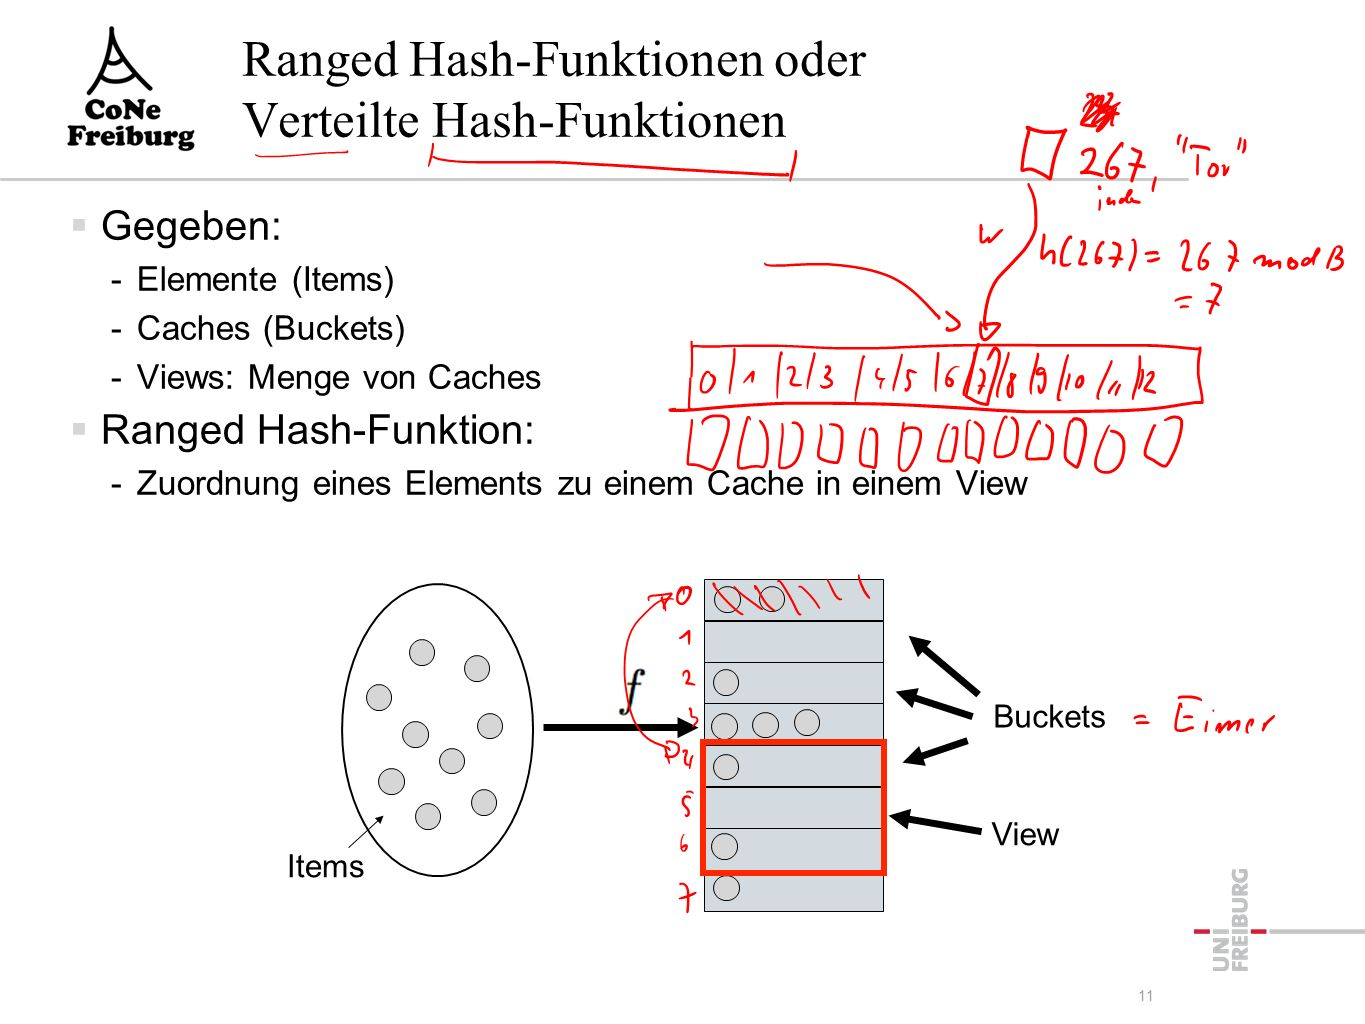 11  Gegeben: -Elemente (Items) -Caches (Buckets) -Views: Menge von Caches  Ranged Hash-Funktion: -Zuordnung eines Elements zu einem Cache in einem View Ranged Hash-Funktionen oder Verteilte Hash-Funktionen Buckets Items View